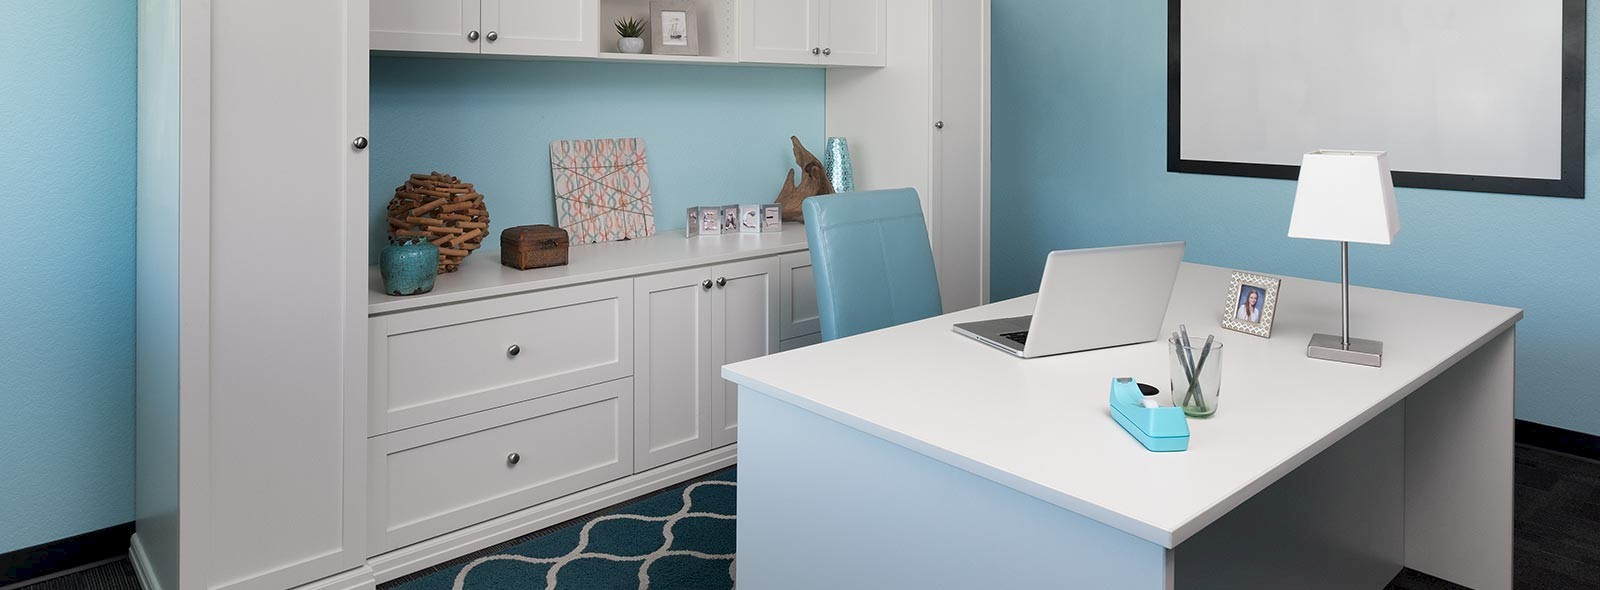 offices full with home office for desks layout feature related inspirations stunning size great fascinating table cabinet ideas desk inspirational ikea categories cabinets furniture that two of person astonishing large pinterest